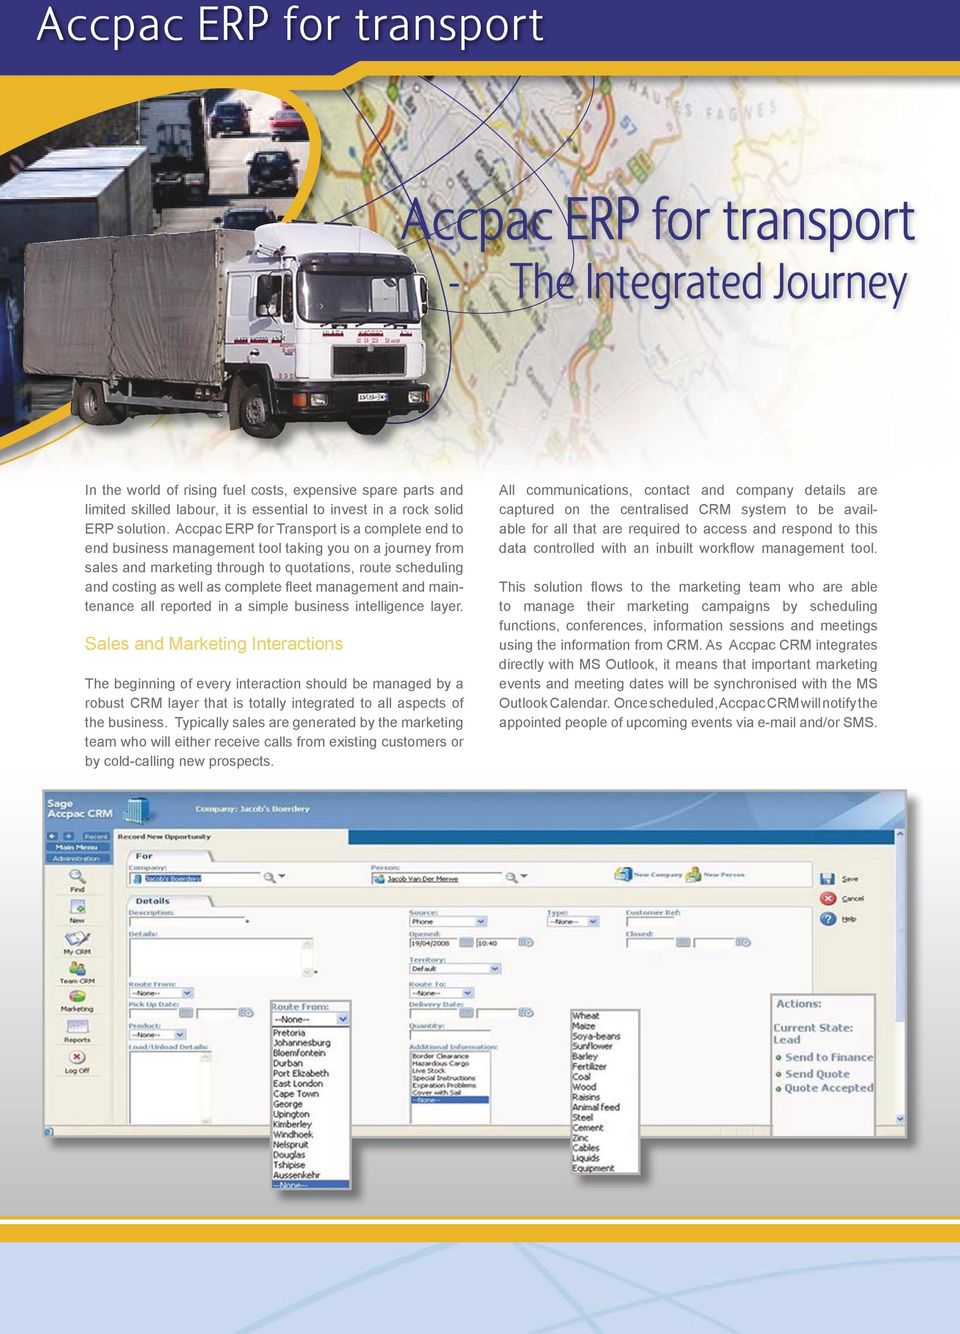 Accpac ERP for Transport is a complete end to end business management tool taking you on a journey from sales and marketing through to quotations, route scheduling and costing as well as complete